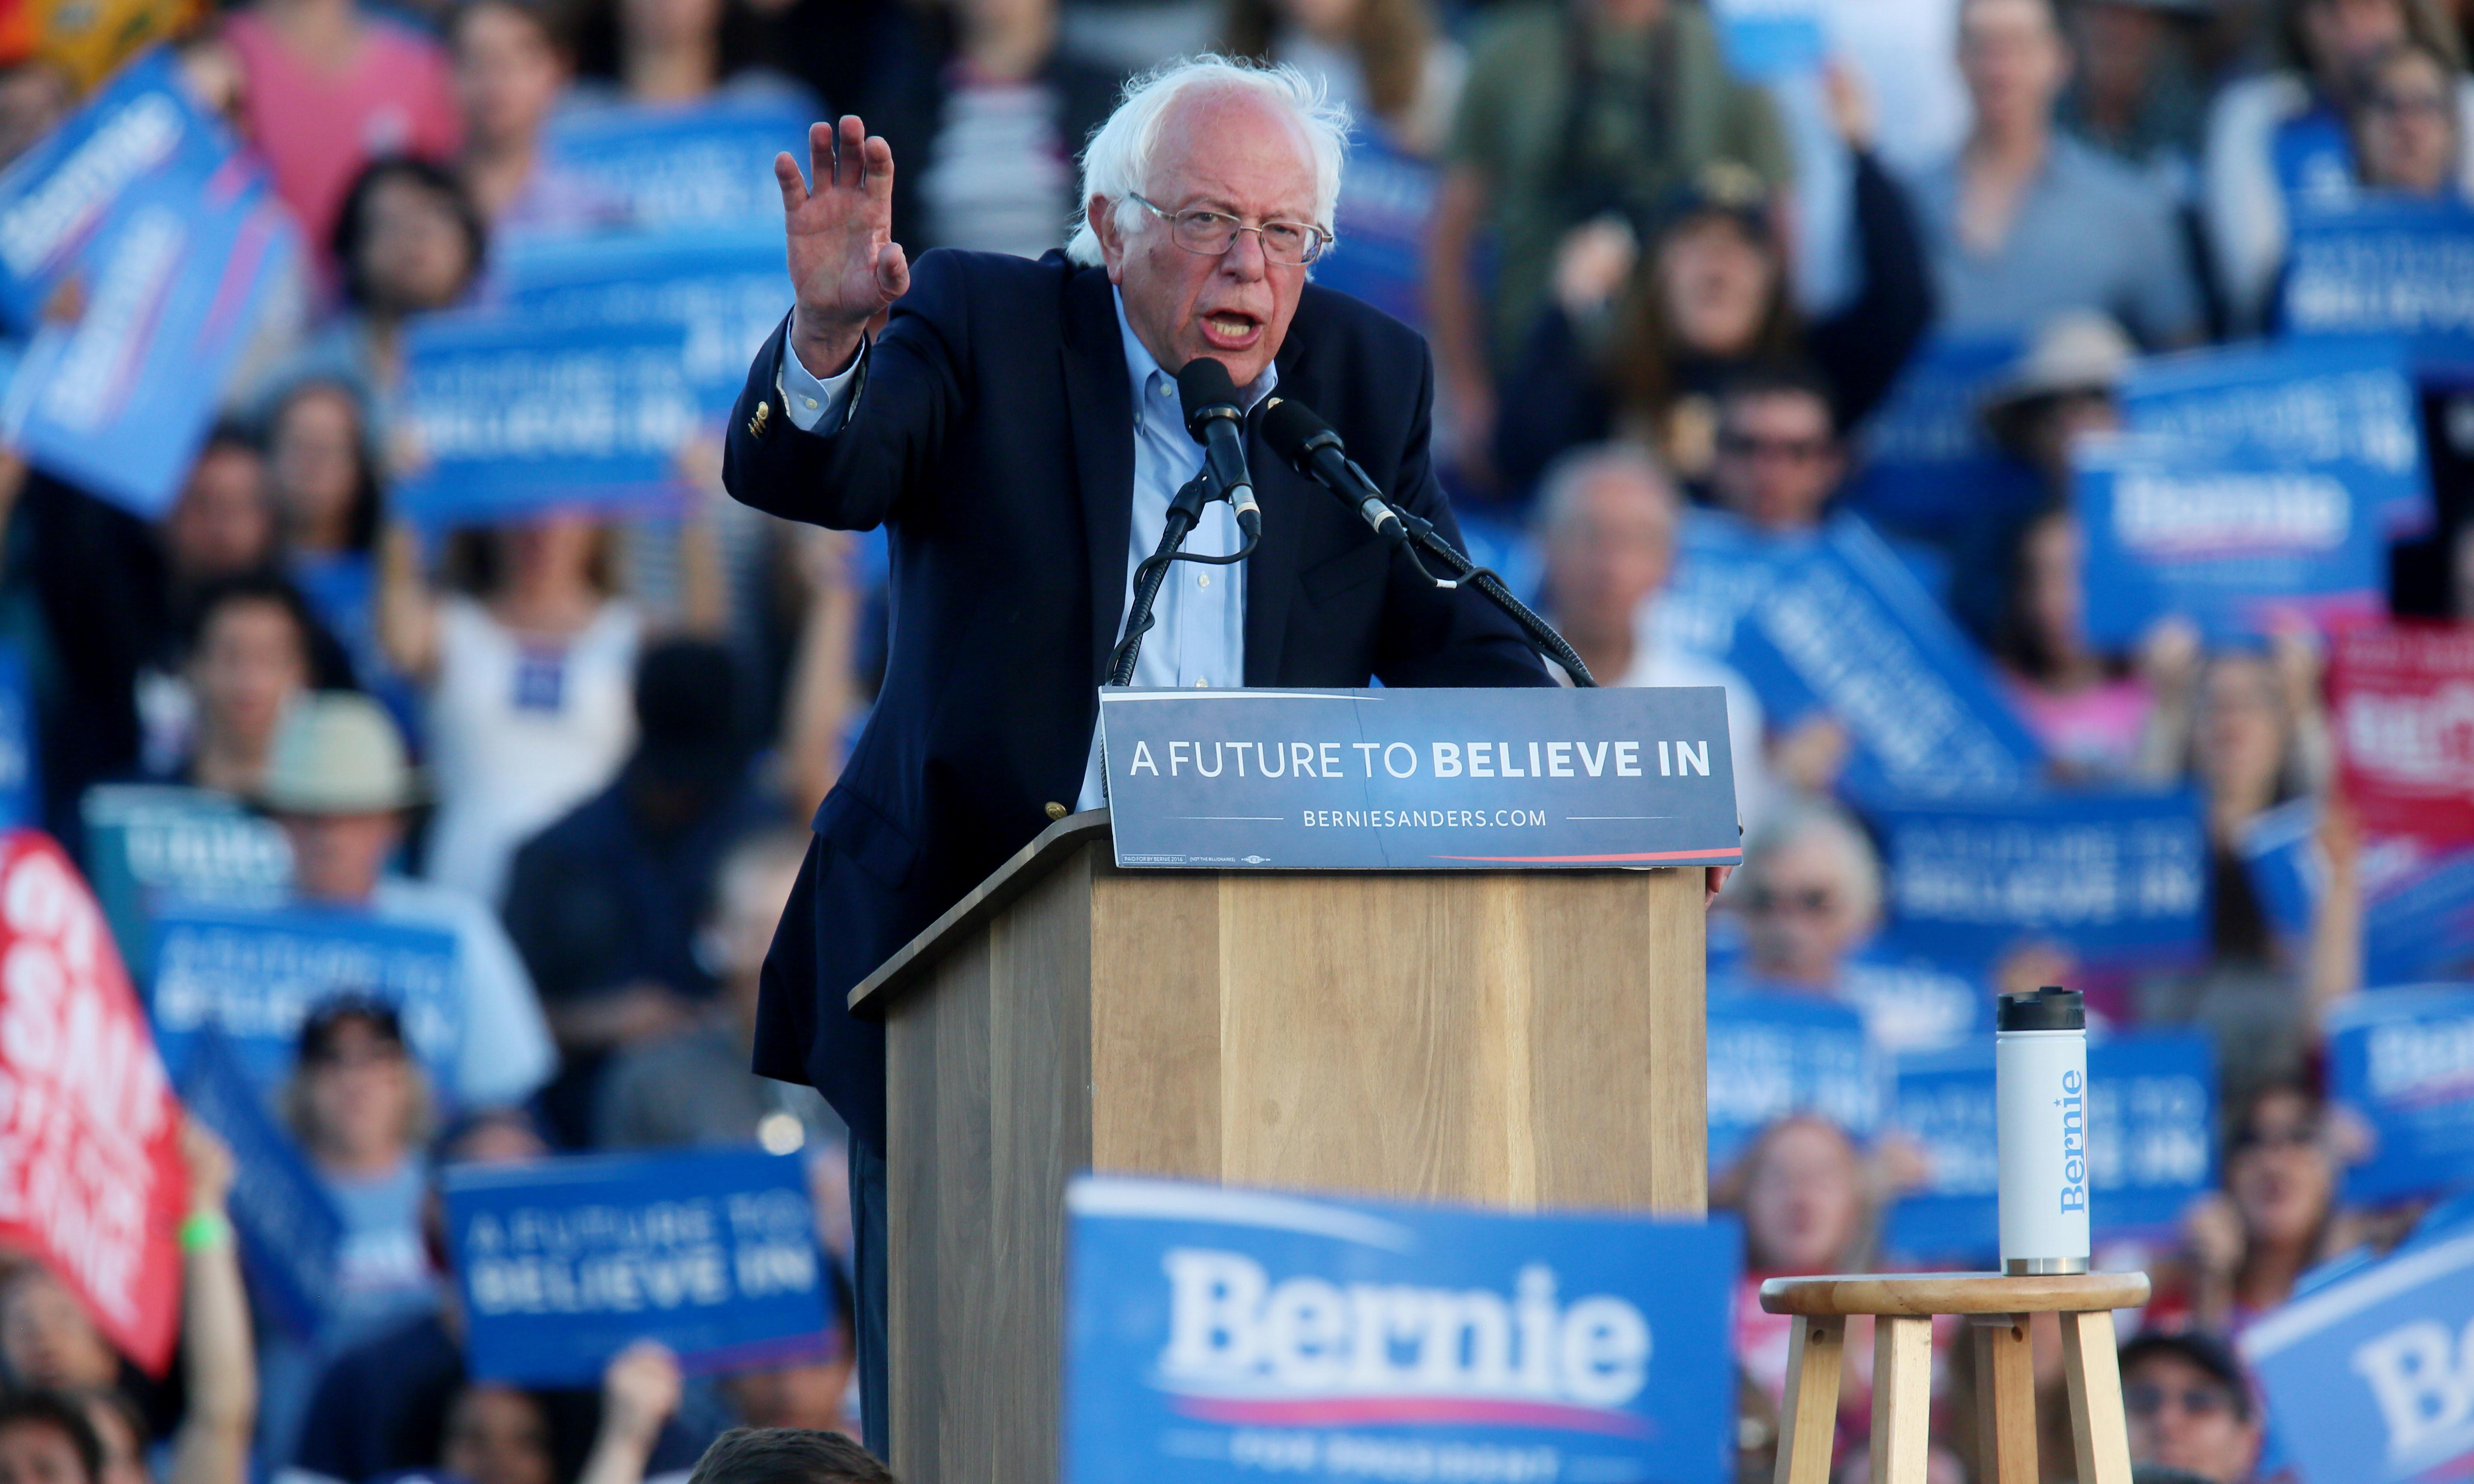 Sanders started a revolution in 2016. In 2020, he can finish it